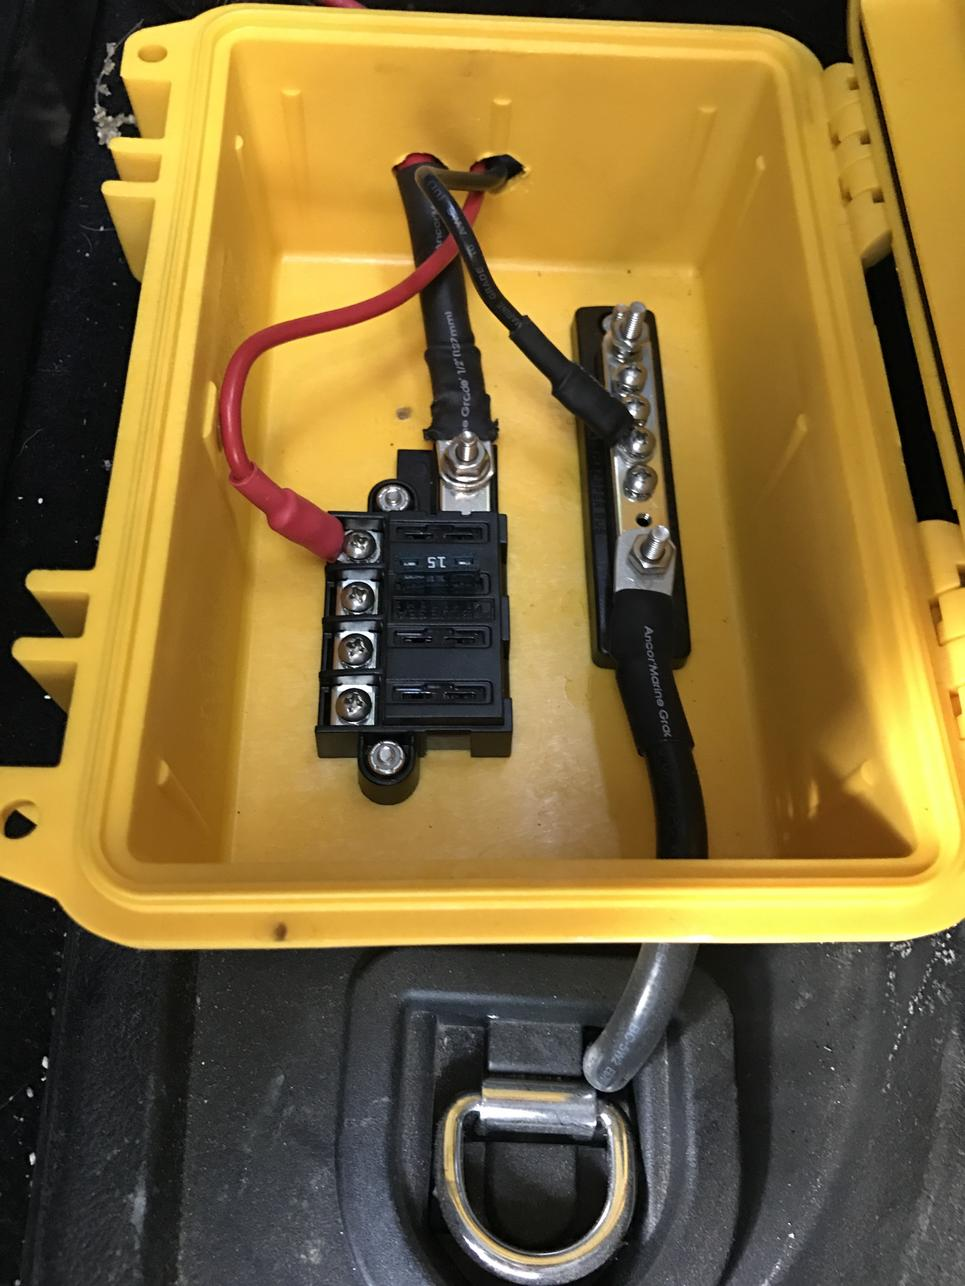 Blue Sea Fuse Box Wiring Library Peugeot Jetforce Attached Img 4601 1252 Kb